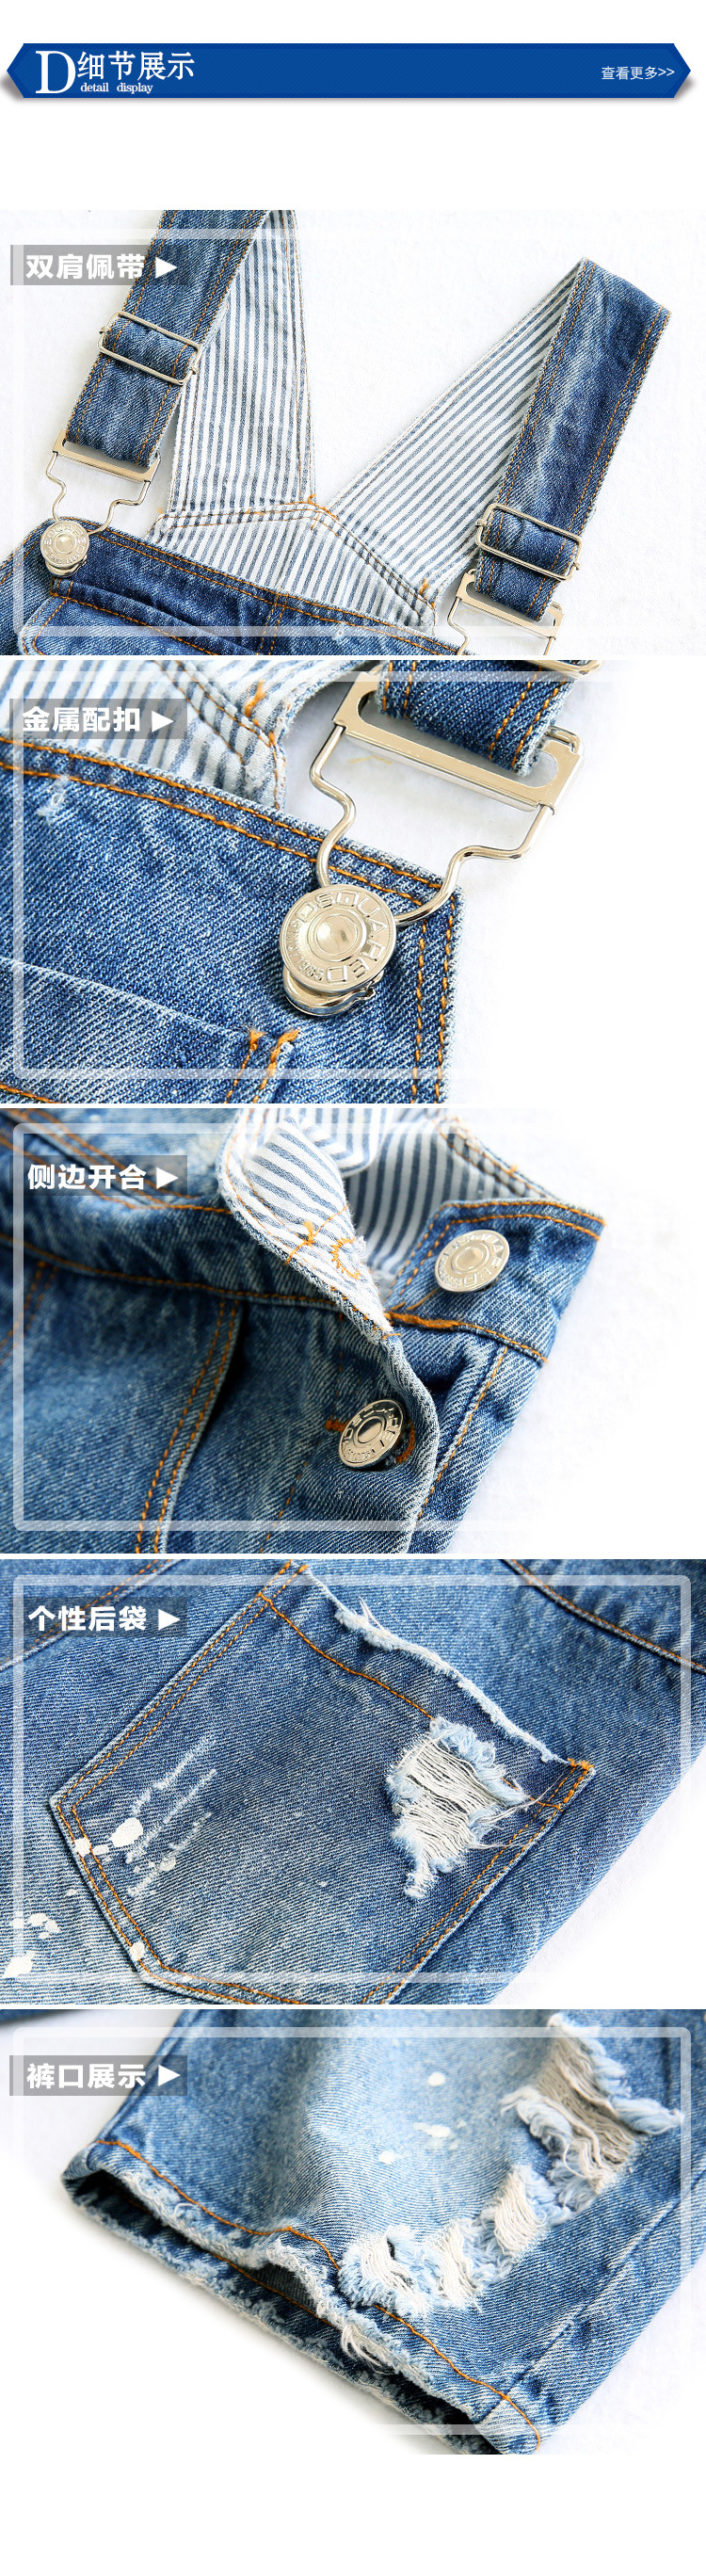 2020 summer children pants Overalls Korean Distrressed Worn Holes Straps Jeans Girl boy baby shorts pants kids clothes clothing